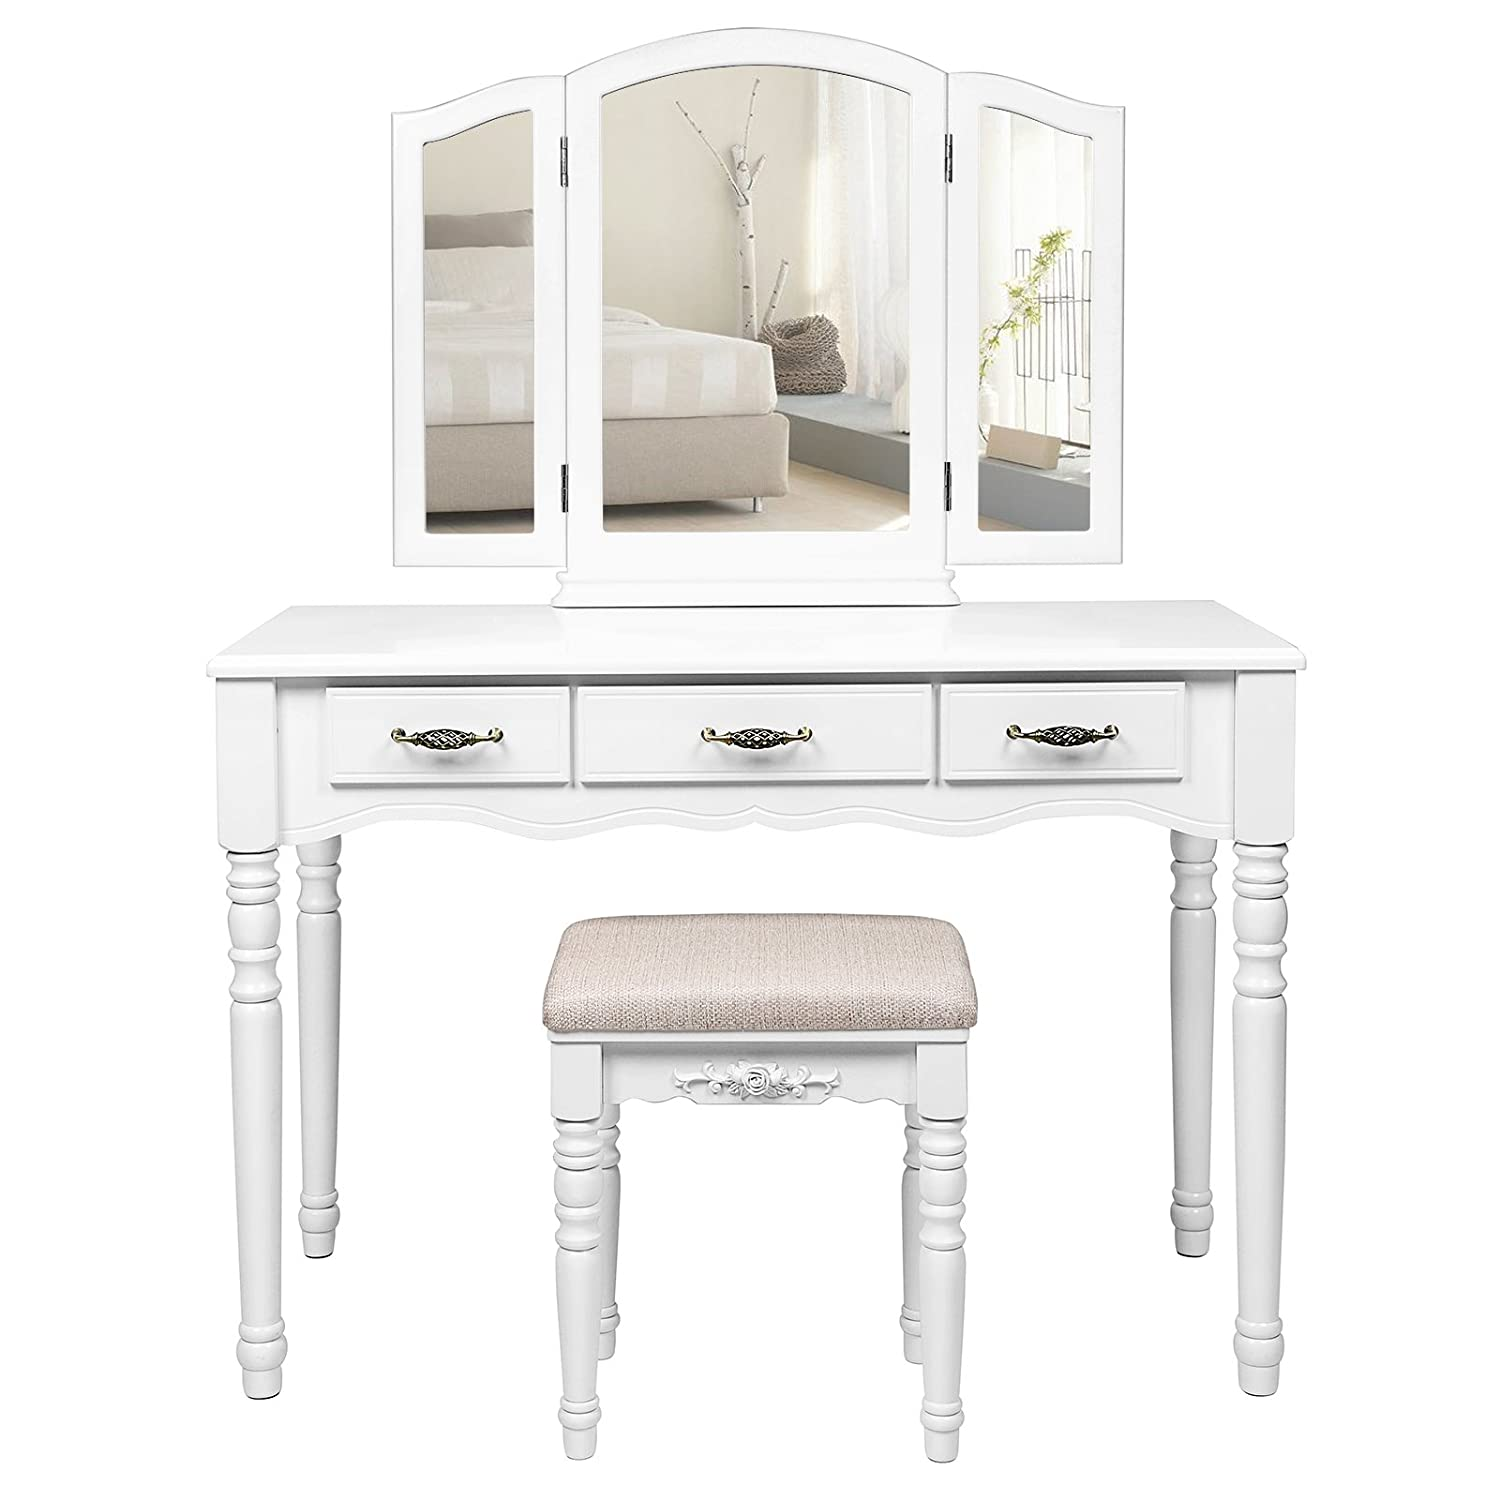 Songmics large dressing table set tri folding mirror vanity makeup desk cushioned stool 3 drawers easy assembly white rdt18w amazon co uk kitchen